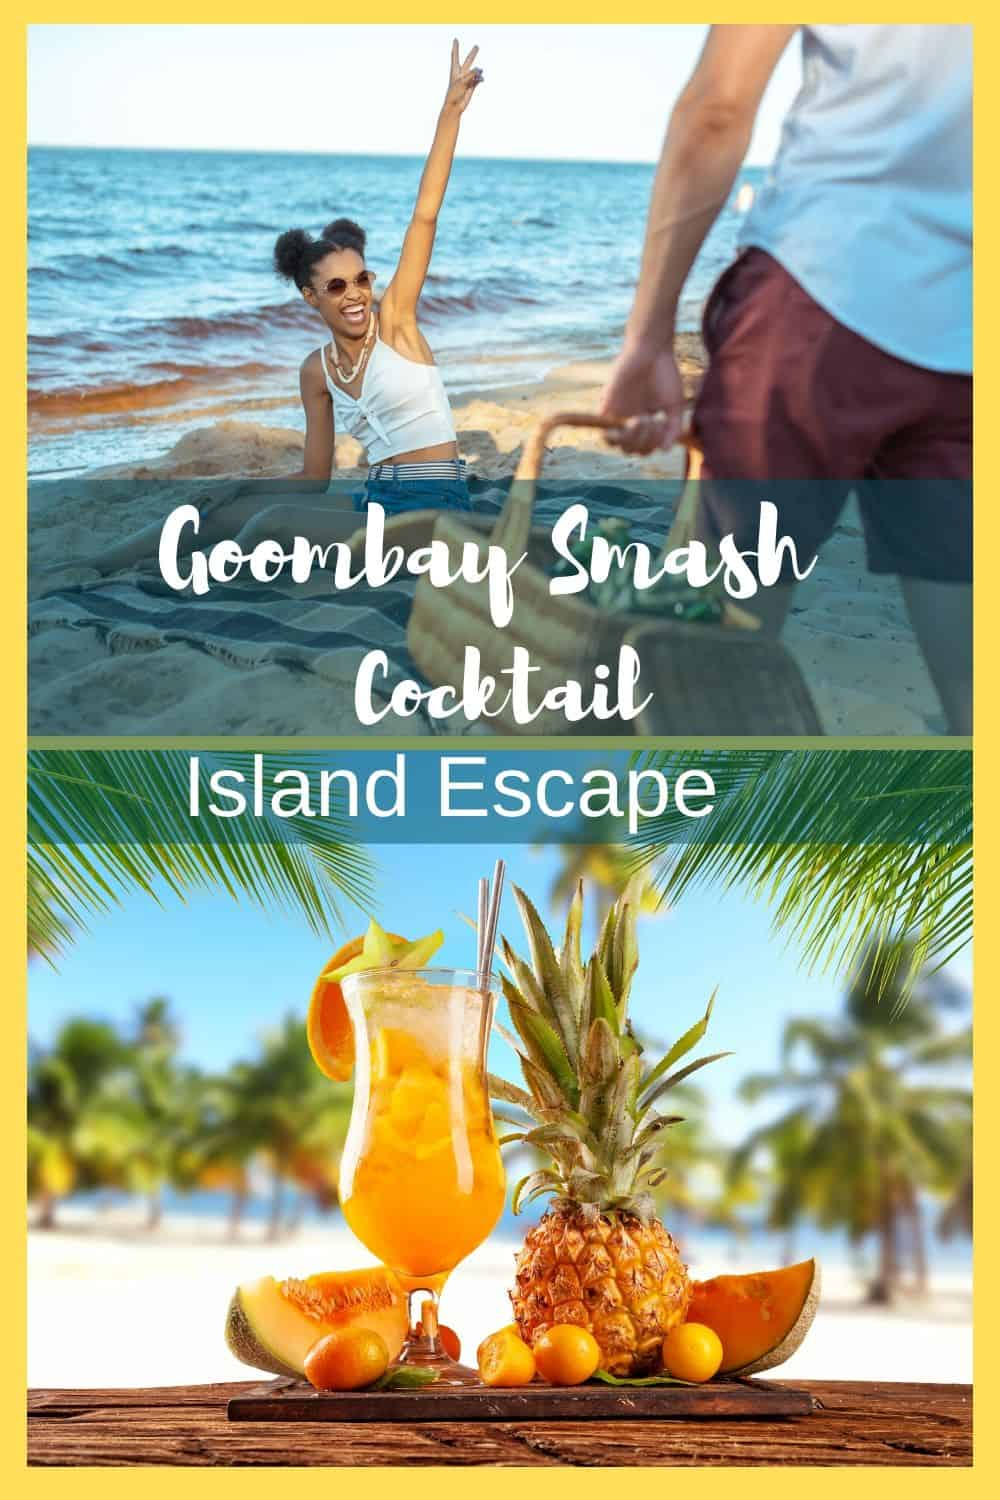 With a delightful tang coupled with coconut, you'll be transported to the islands of the #Caribbean without leaving home! The Goombay Smash is a perfect cocktail to welcome summer. Serve it ice cold for a refreshing drink for pool parties, outdoor BBQs, or sipping on the weekends. #cocktails #summercocktail #cocktailrecipes #goombaysmashcocktail #easyrecipes #summerdrinks